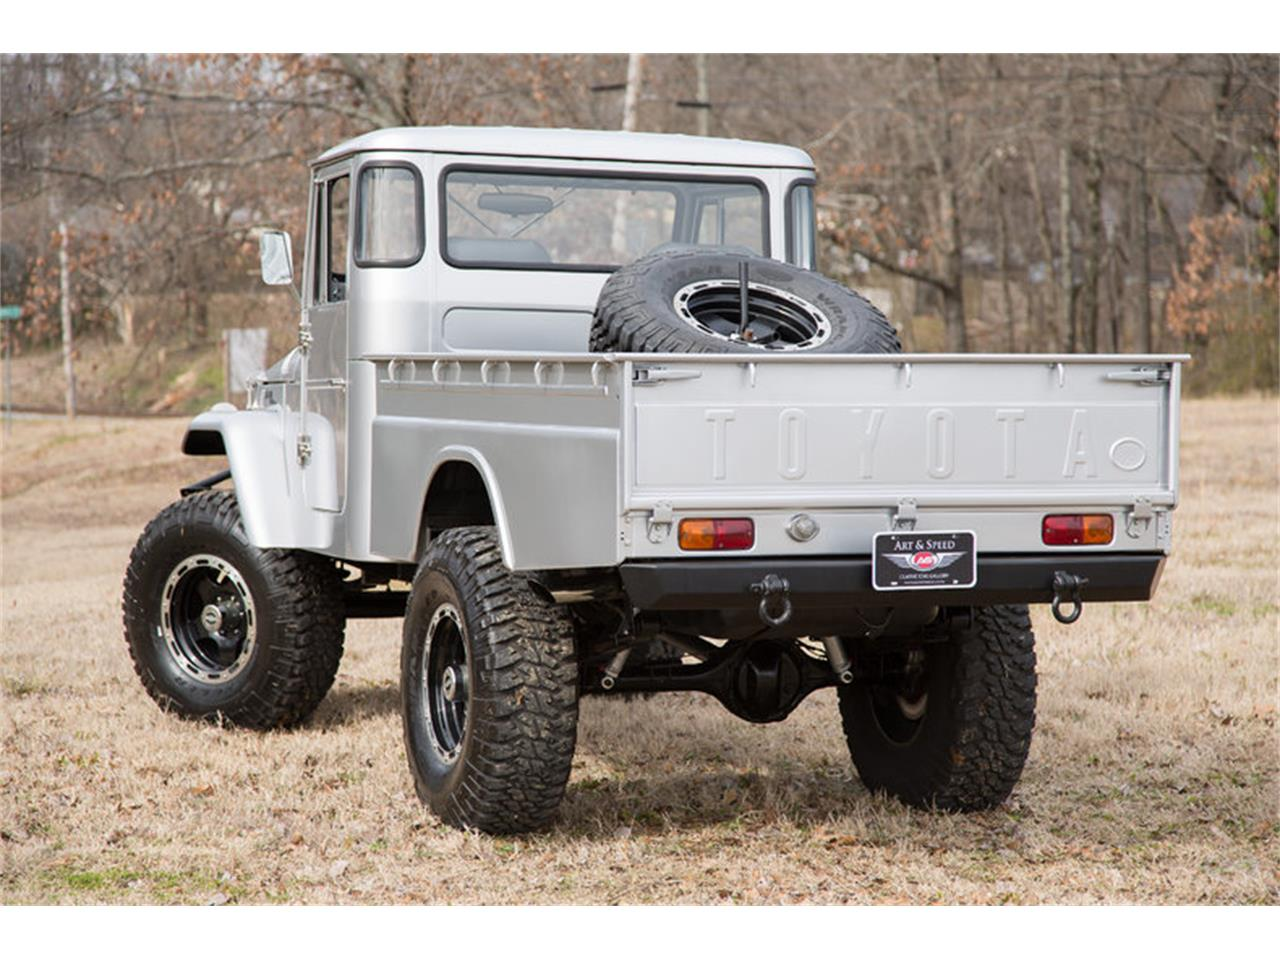 Large Picture of Classic 1965 Toyota Land Cruiser FJ45 Pickup - $86,900.00 - M389